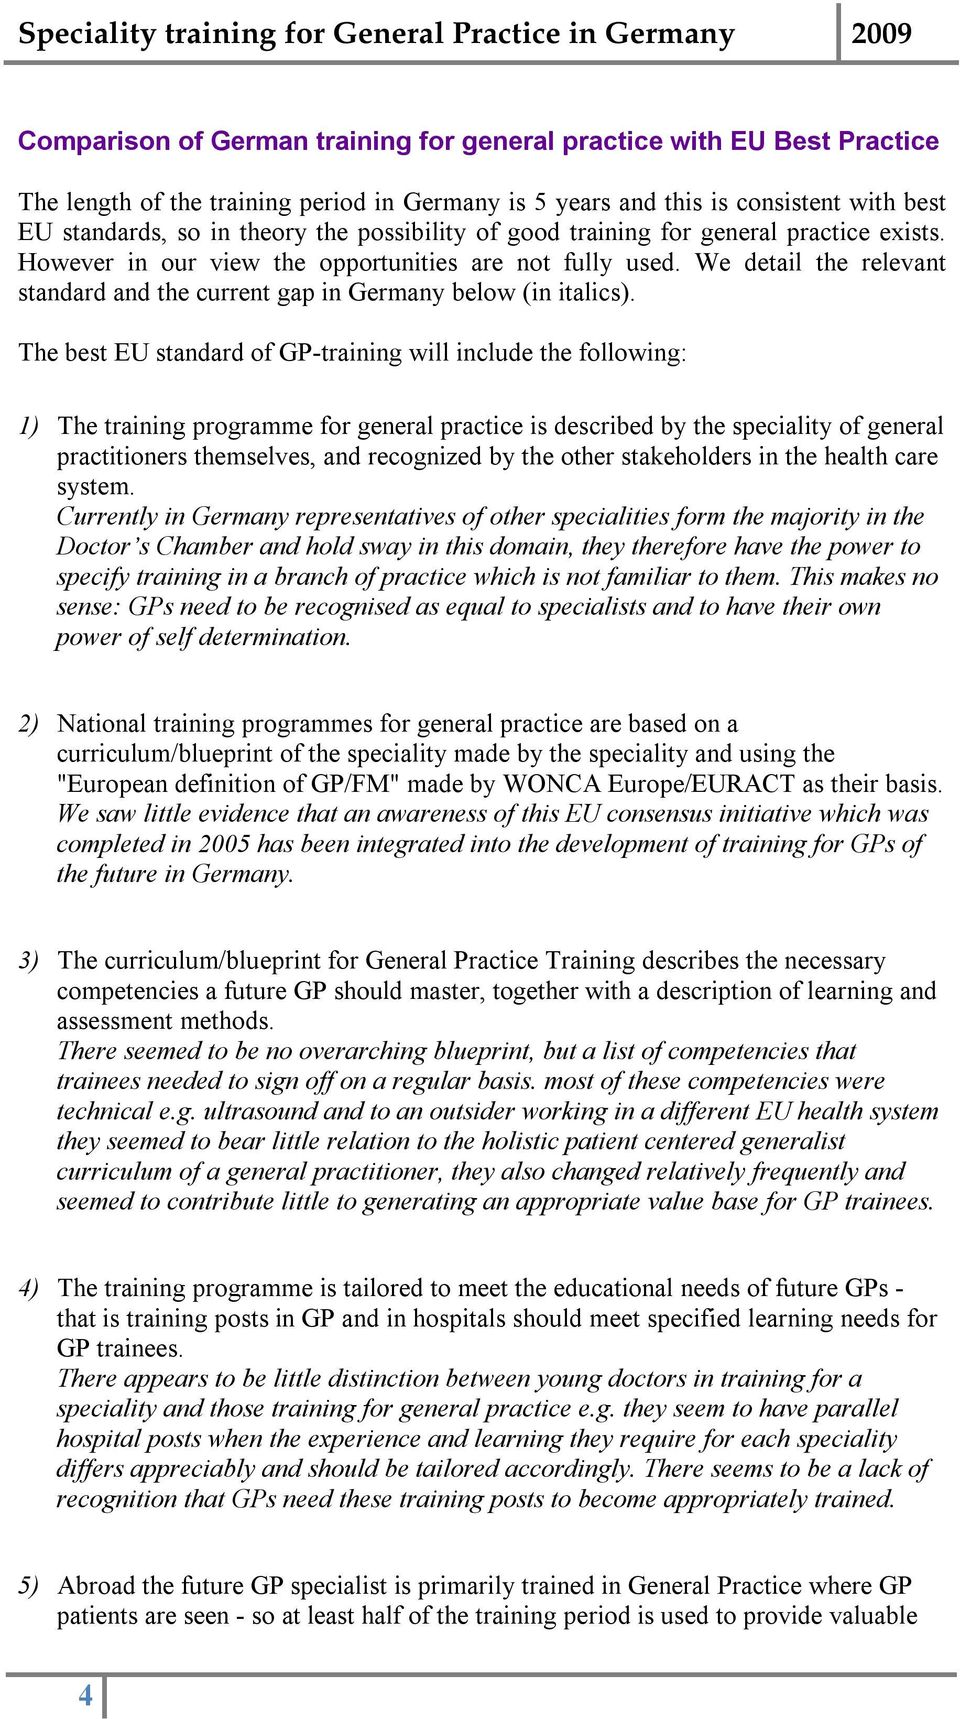 The best EU standard of GP-training will include the following: 1) The training programme for general practice is described by the speciality of general practitioners themselves, and recognized by